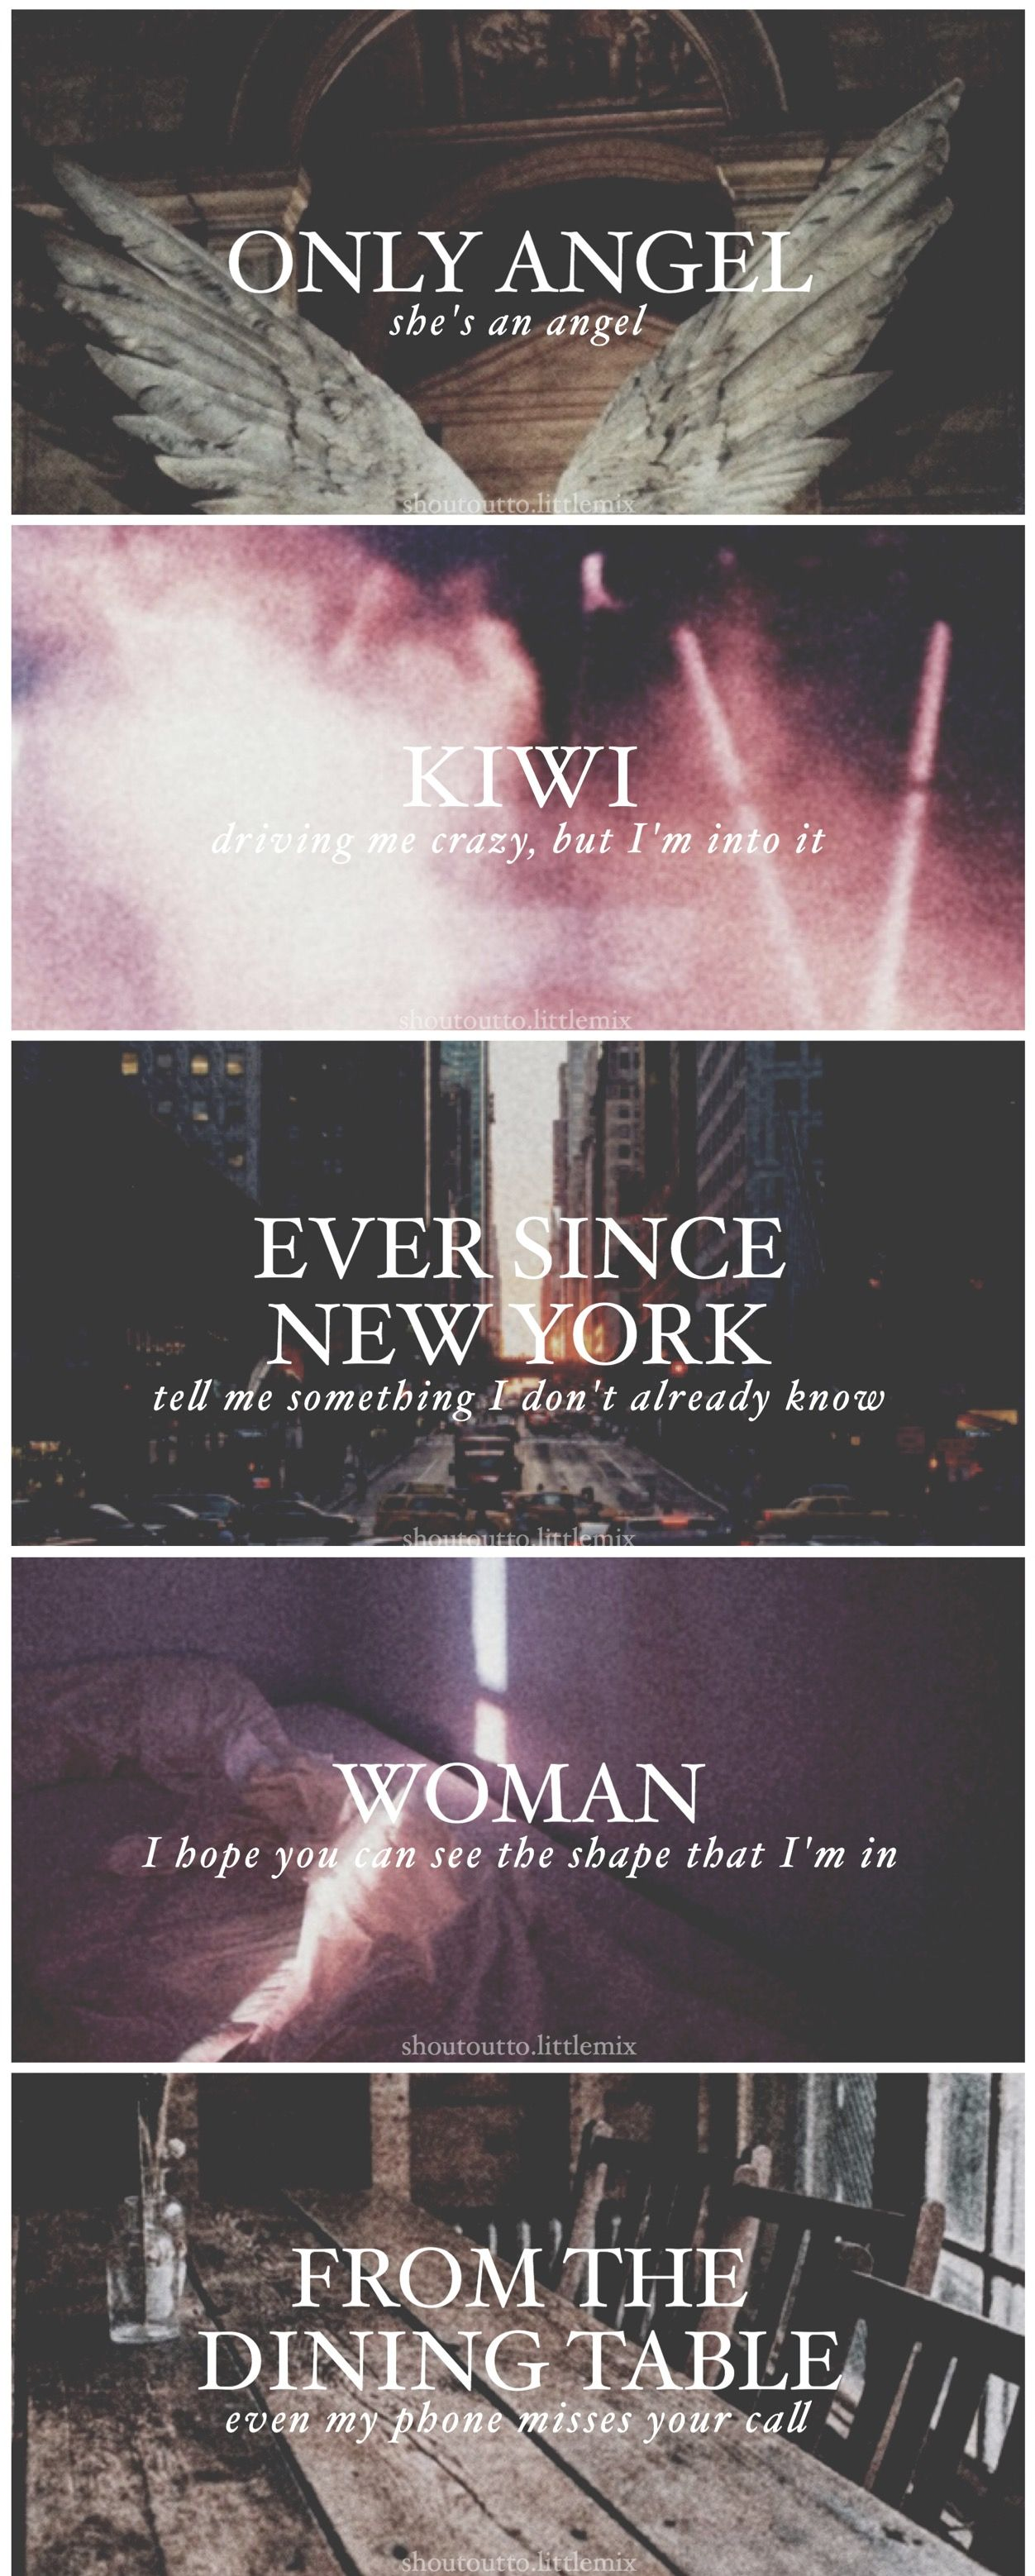 harry styles 'harry styles' tracklist aesthetic for more go to instagram.com/shoutoutto.littlemix (@shoutoutto.littlemix)